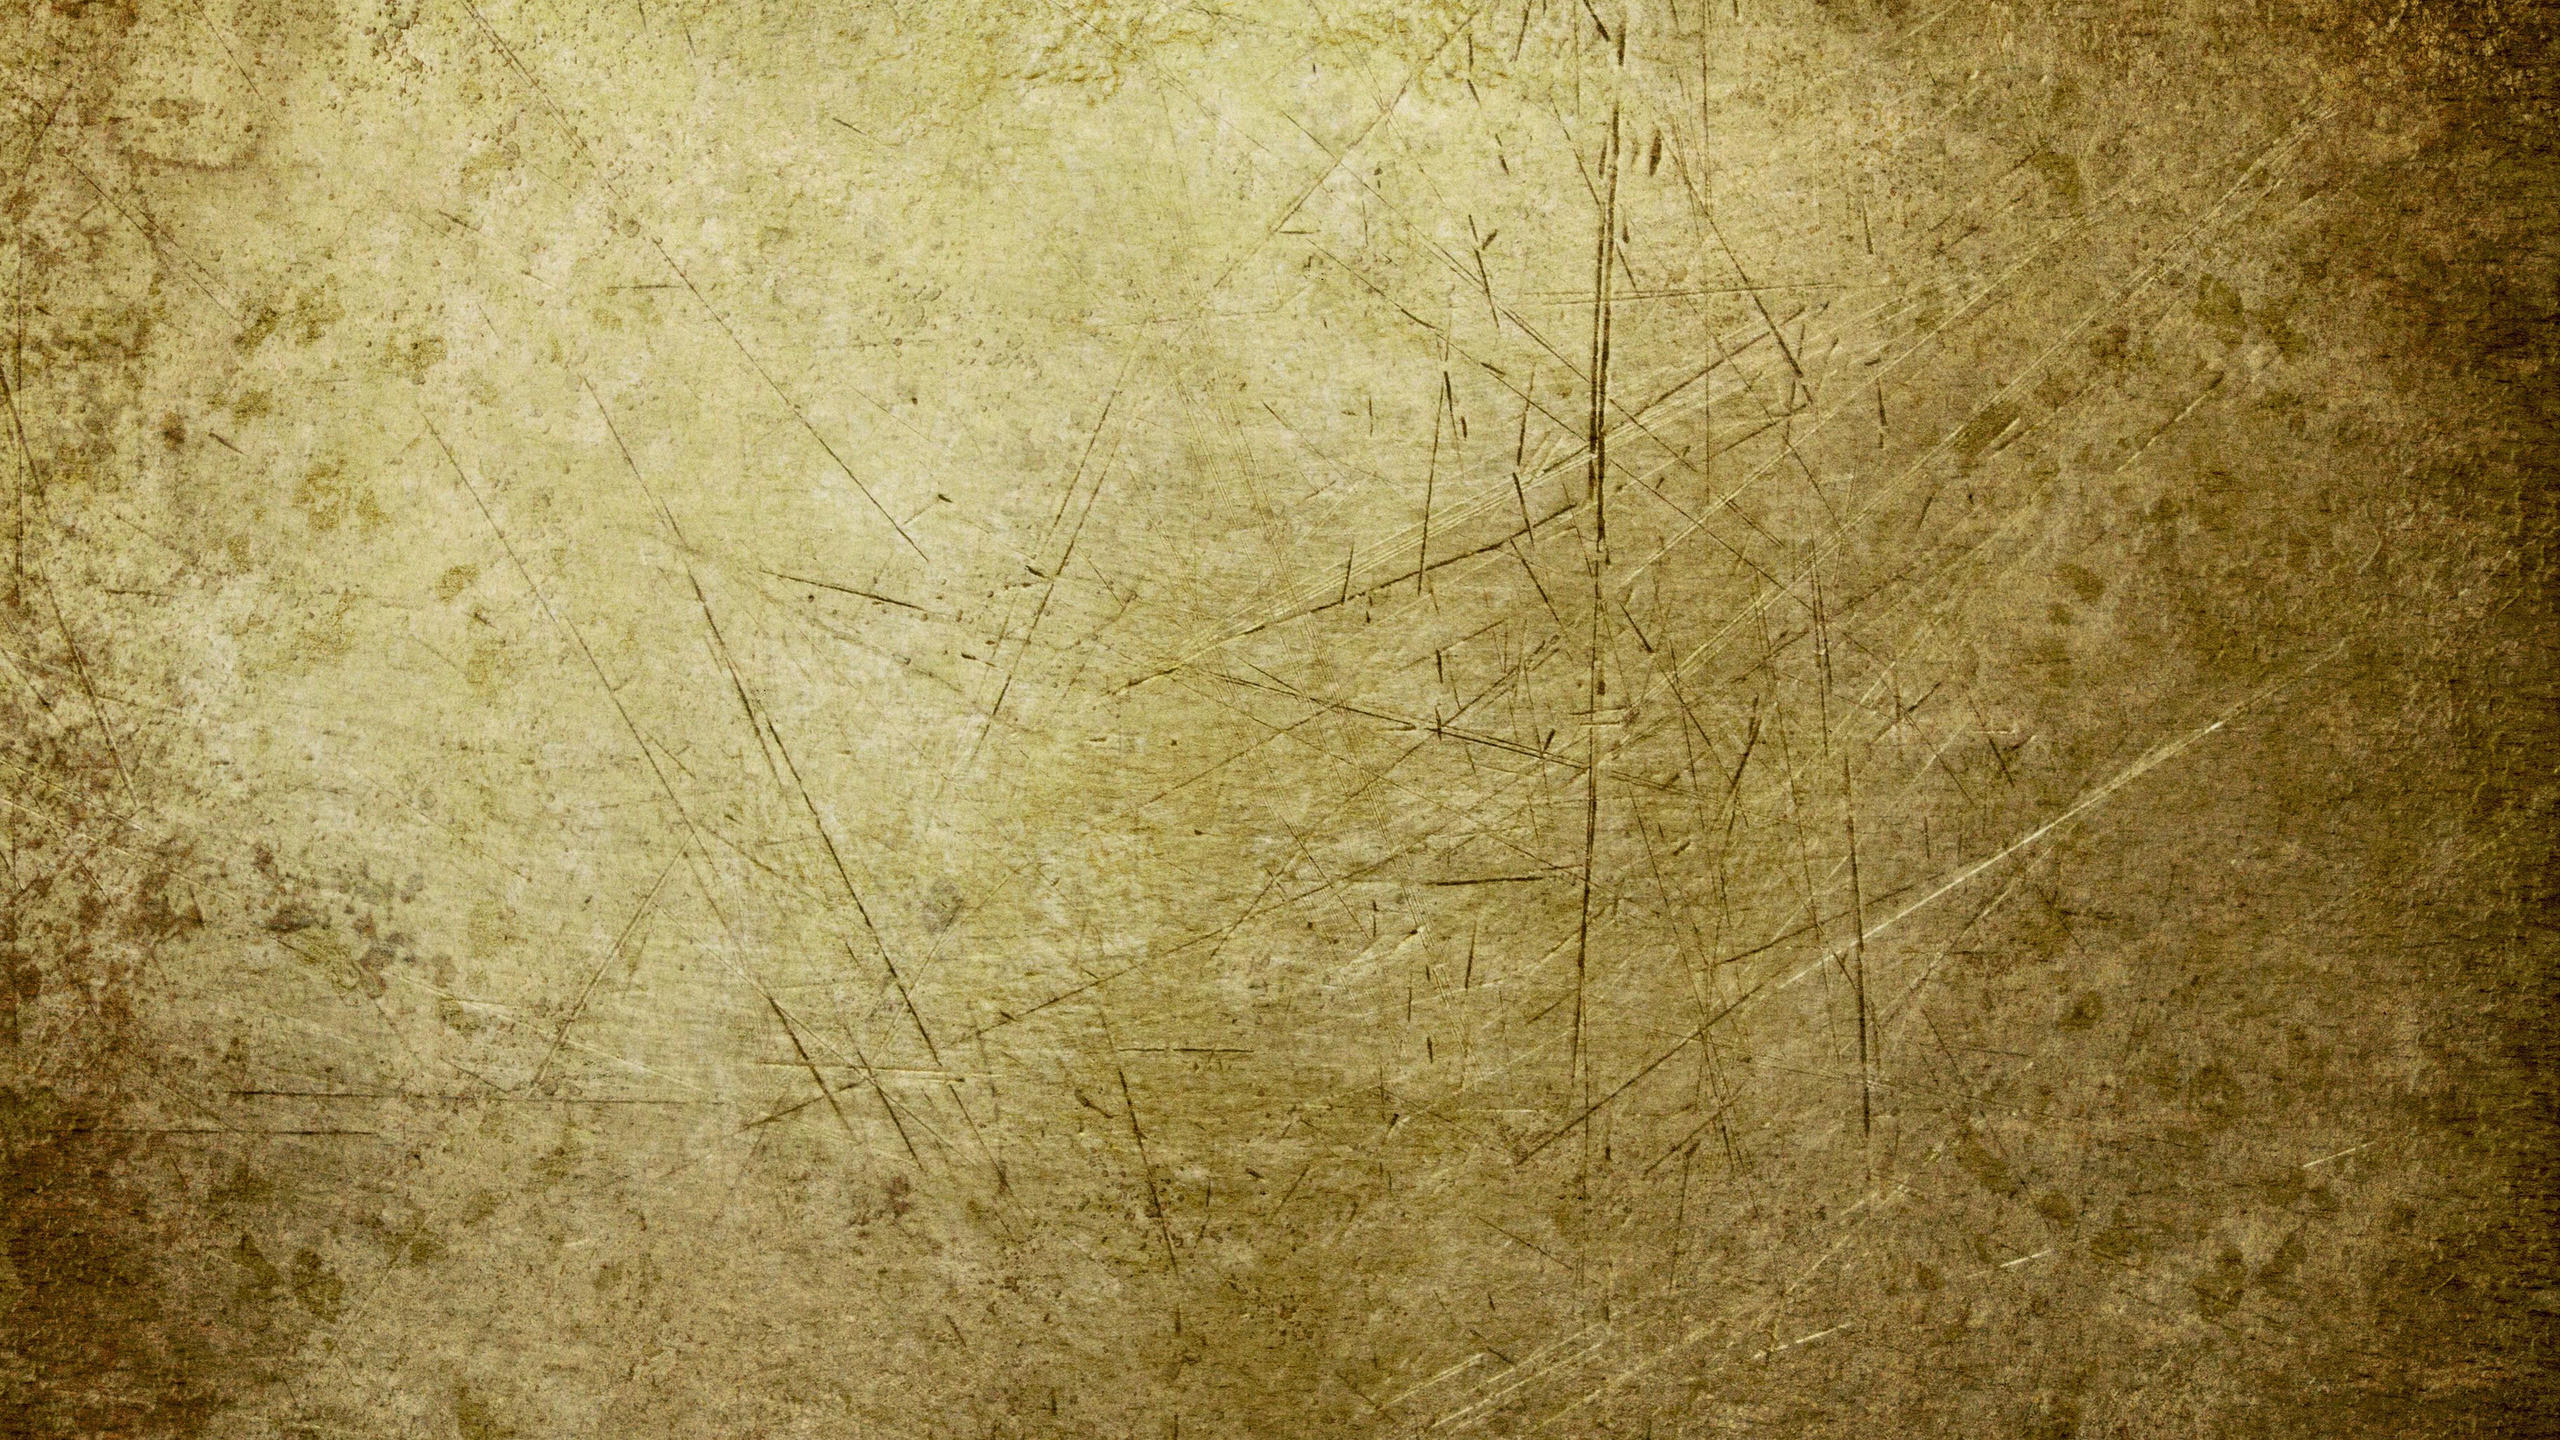 2560x1440 ... texture HD Wallpaper  Grunge ...